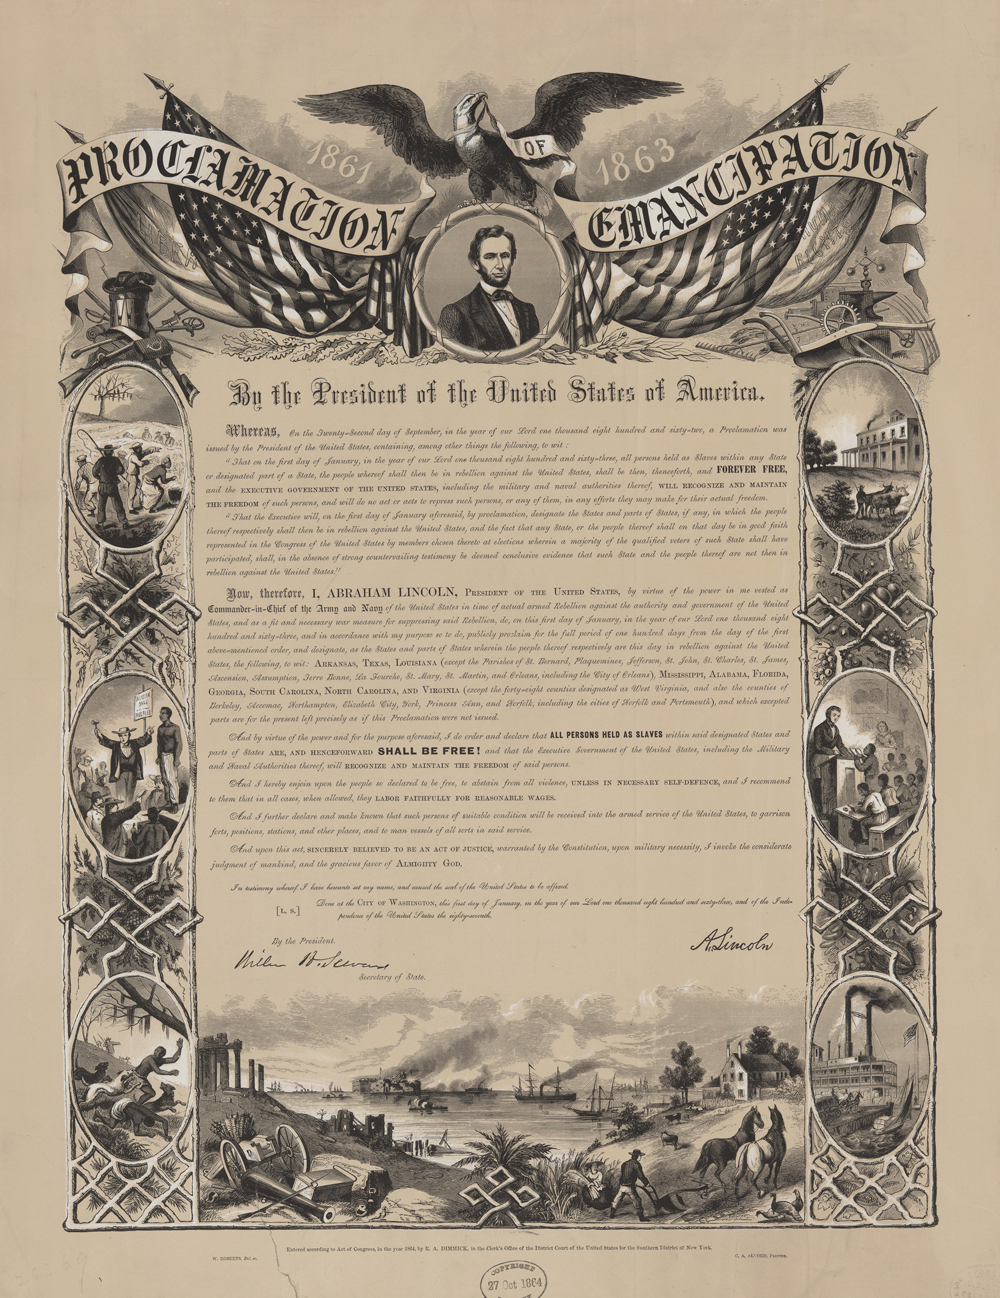 hight resolution of Print of Emancipation Proclamation by President Abraham Lincoln